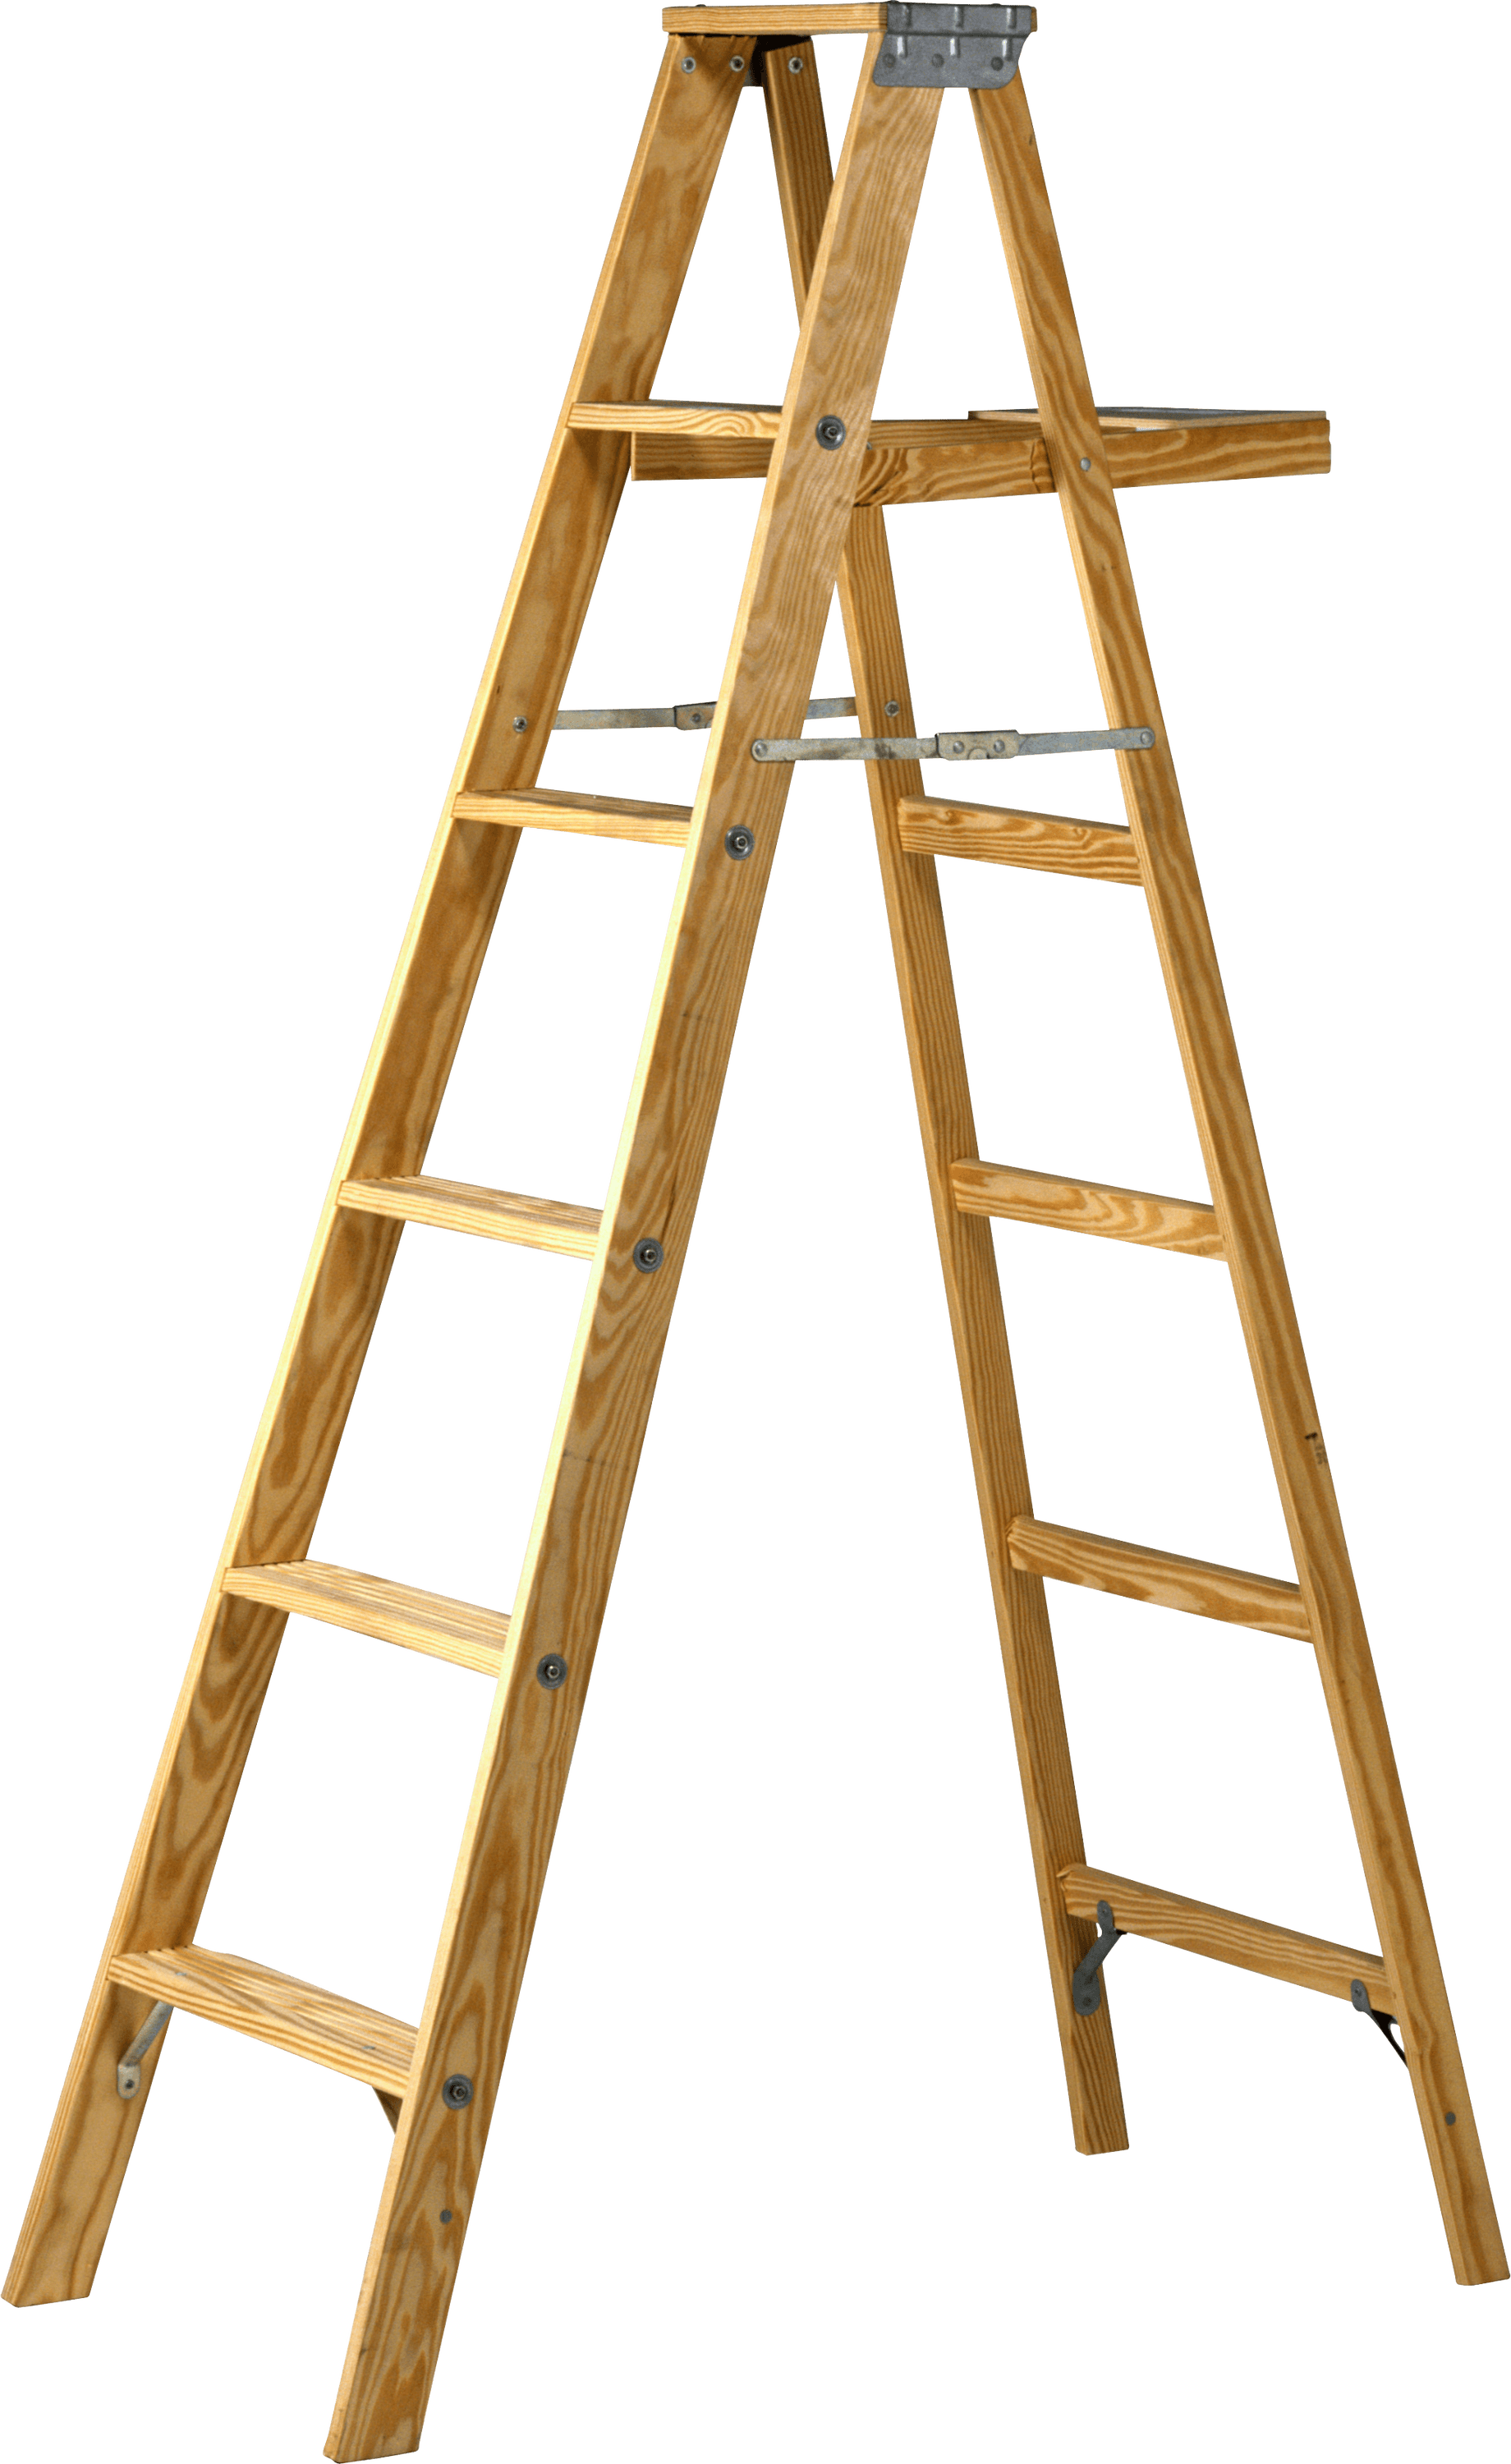 Ladder png. Double wood transparent stickpng